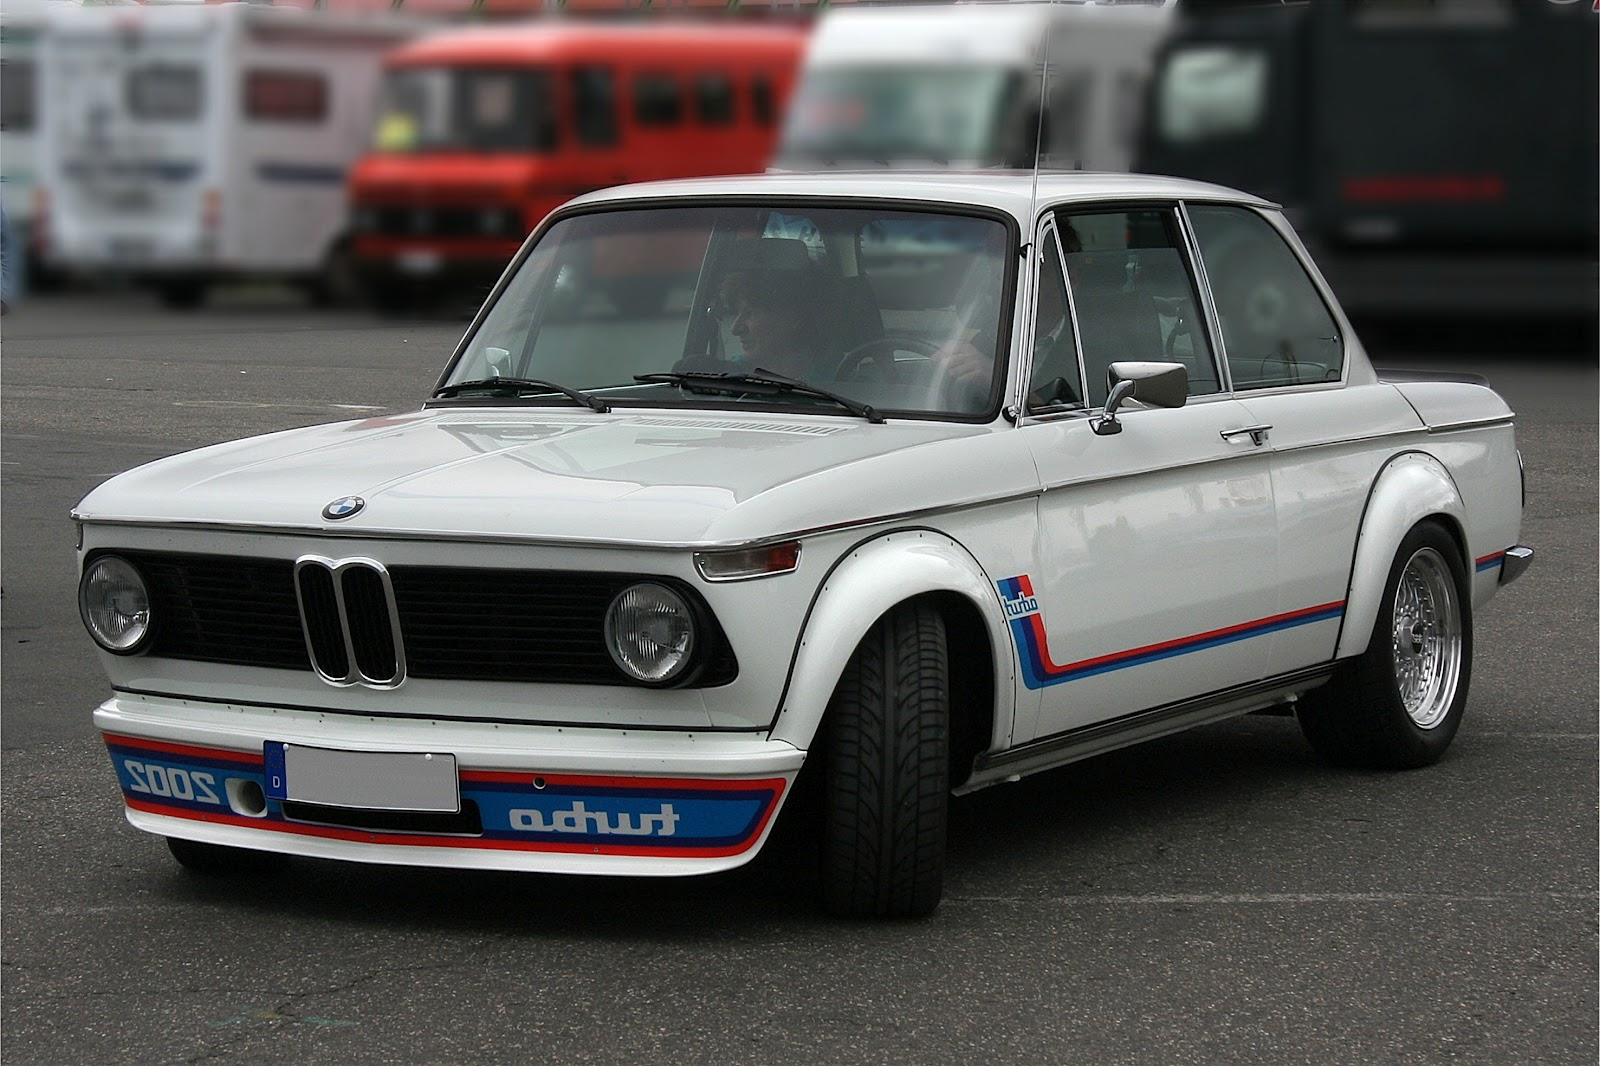 bmw 320i group 5 html with Bmw 2002 on The Cutaway Diagram Files Bmw M3 By additionally BMW 320i Group 5 likewise 32595460232 together with 32614369773 together with 32695584065.